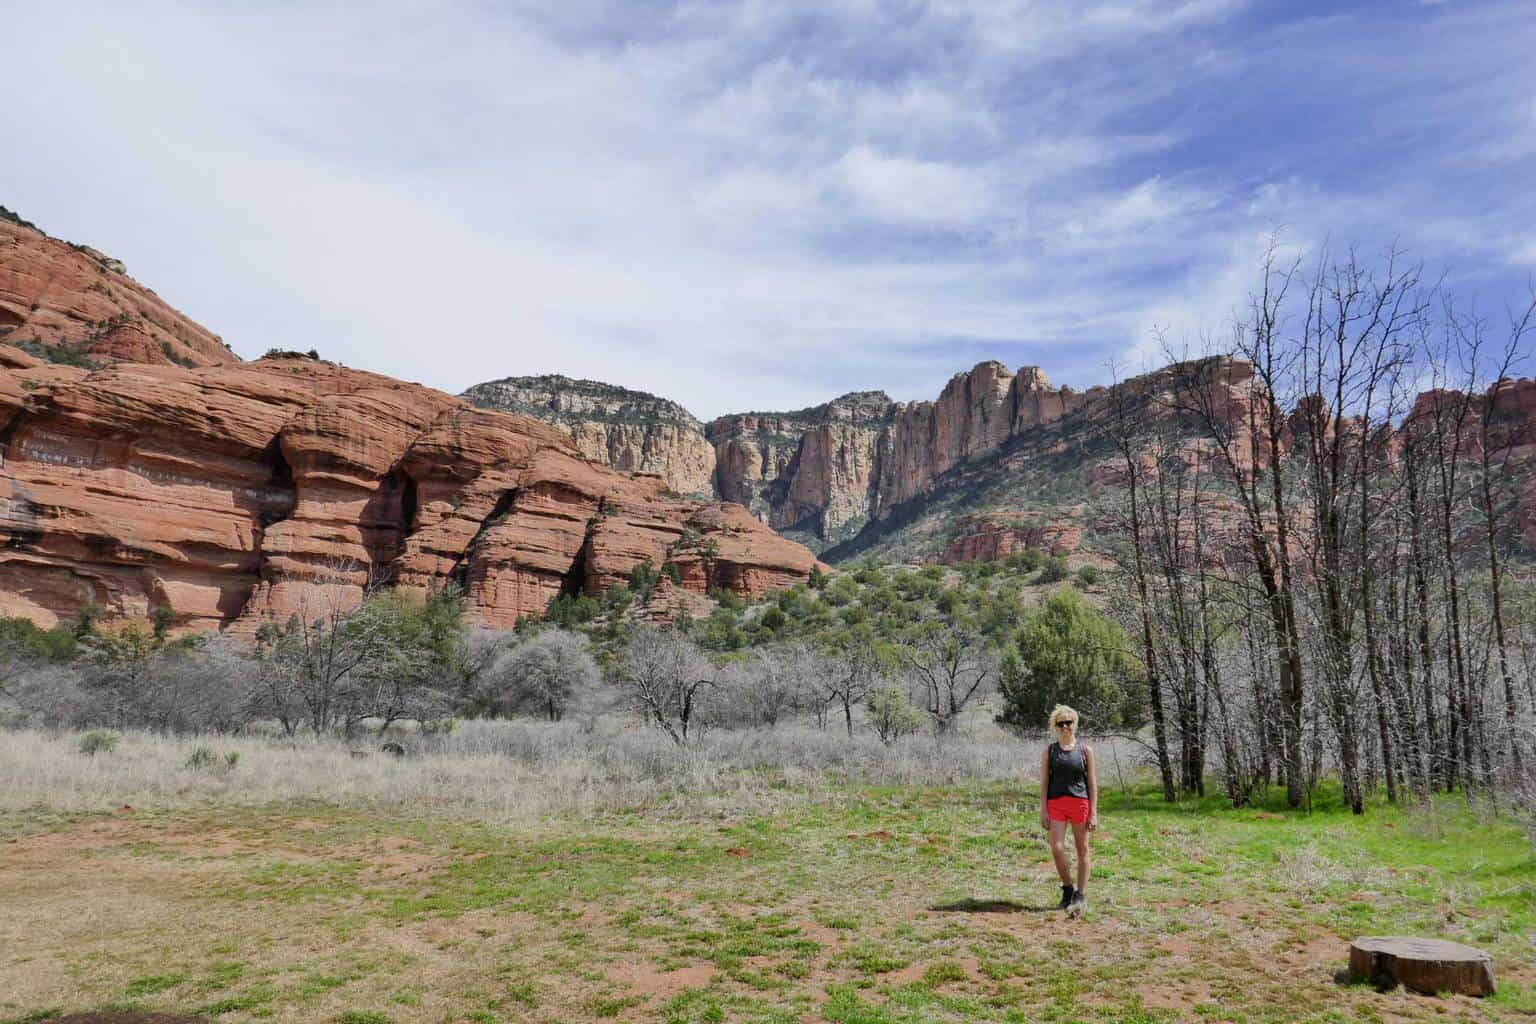 palatki-heritage-site-hiking-trail-sedona-18